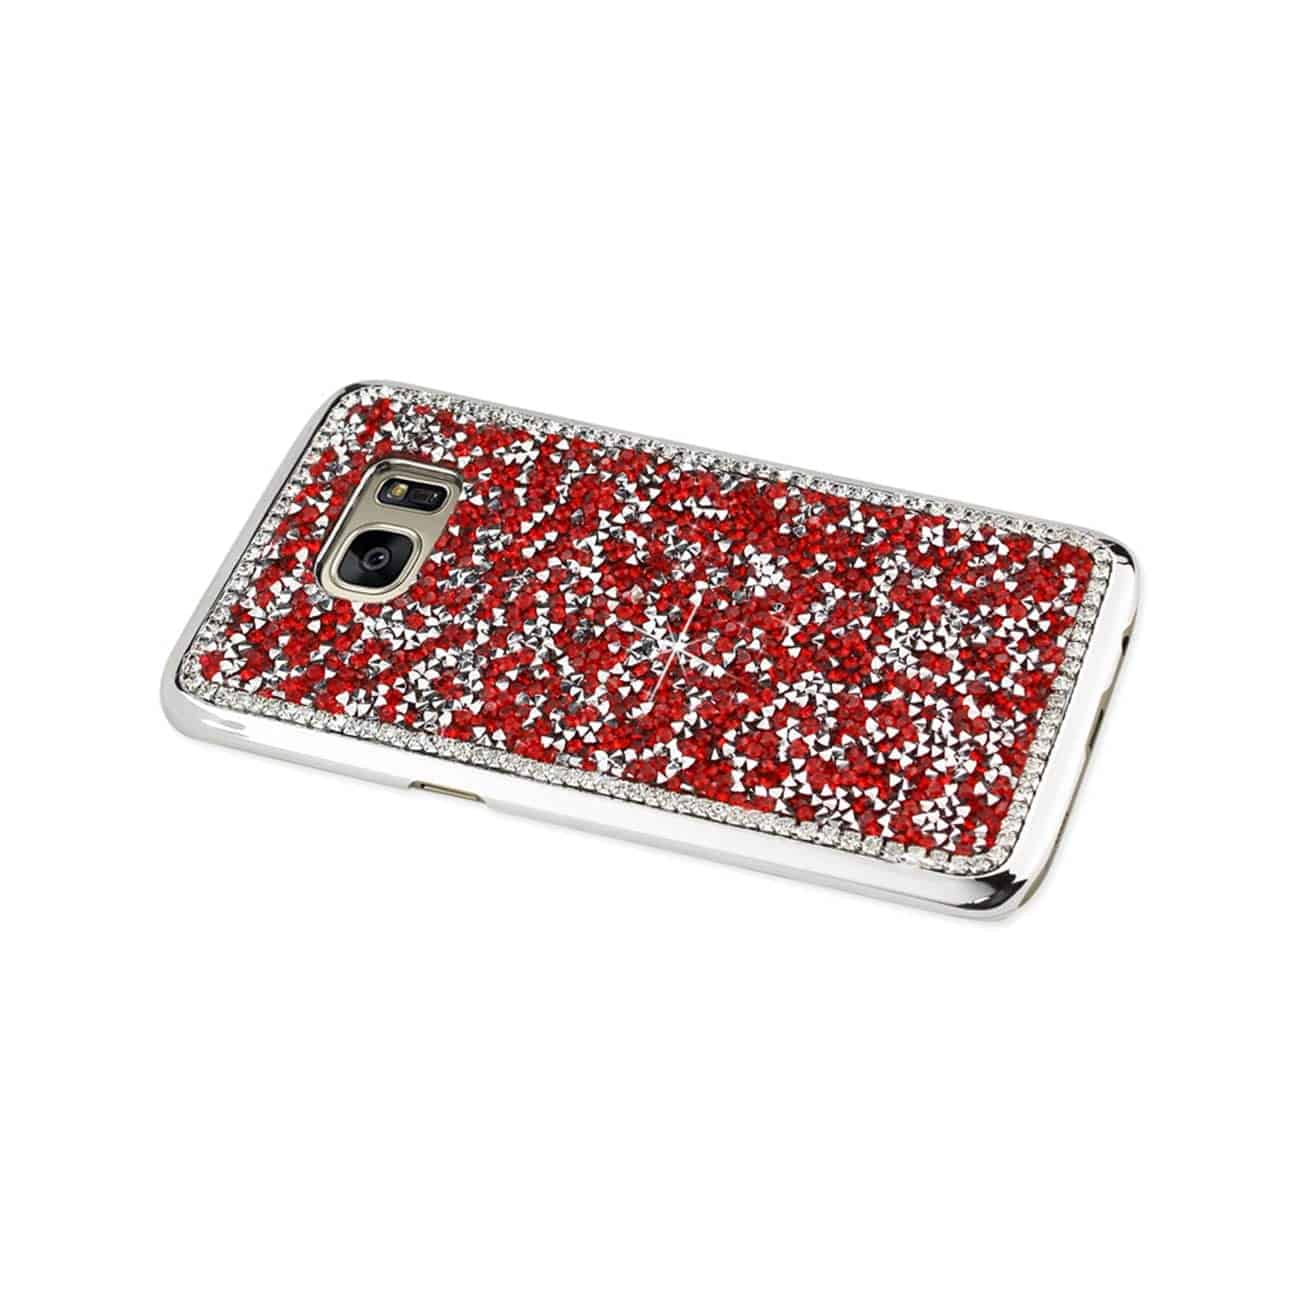 SAMSUNG GALAXY S7 EDGE JEWELRY BLING RHINESTONE CASE IN RED